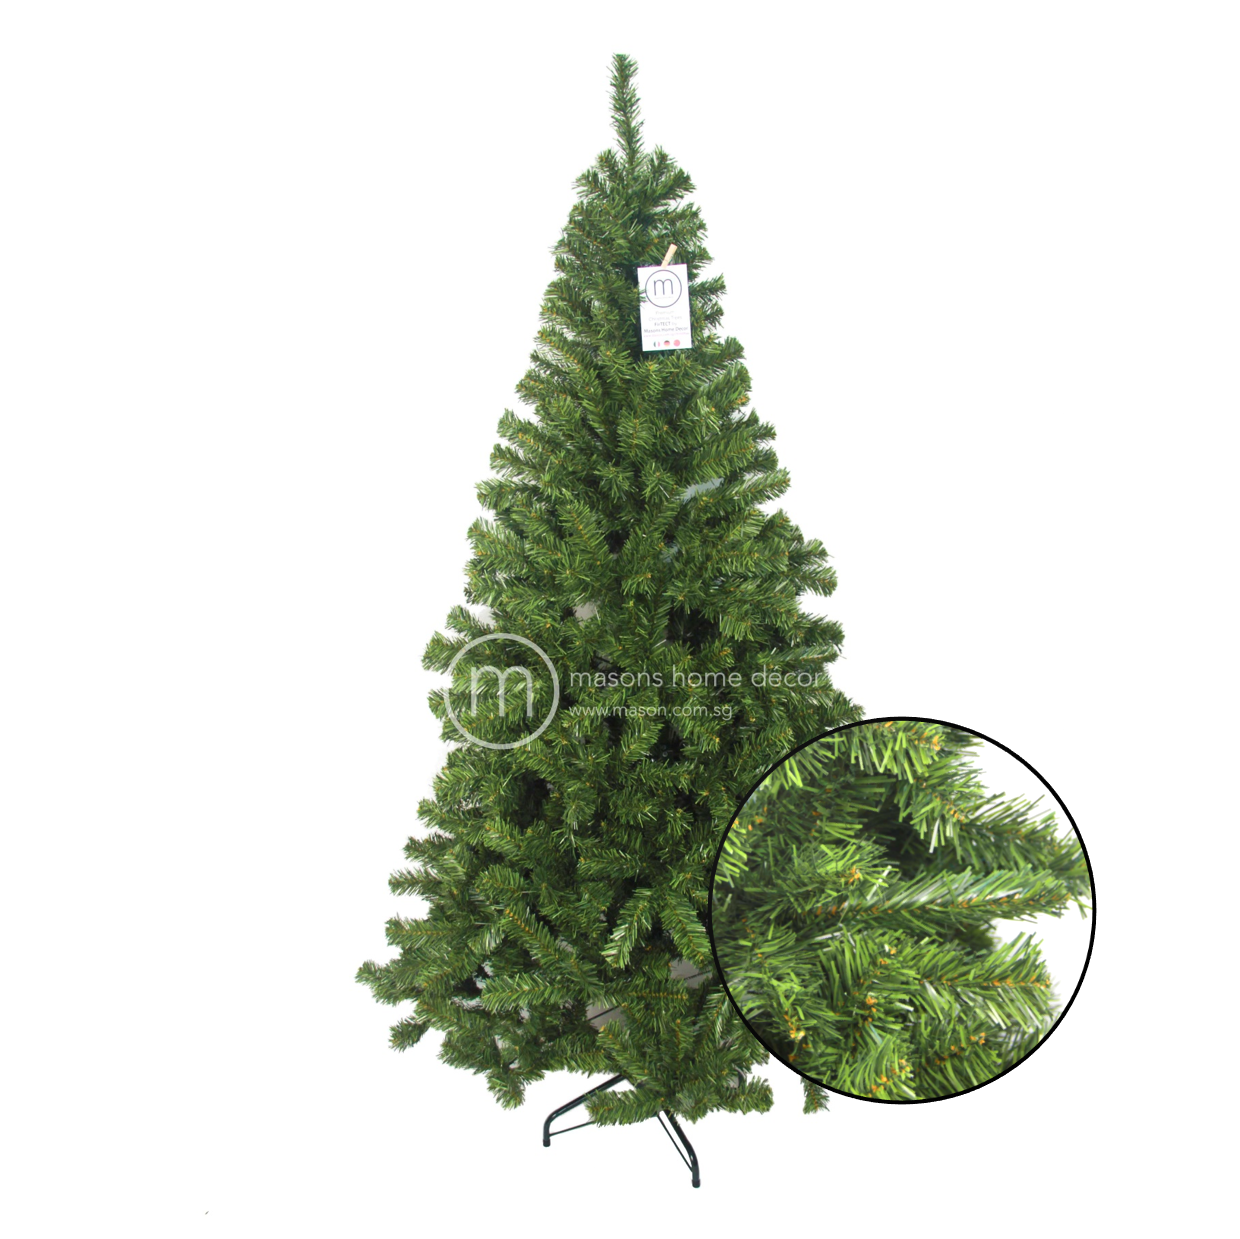 Christmas Decorations Store In Singapore: Ariostea Traditional Pine Christmas Tree From Masons Home